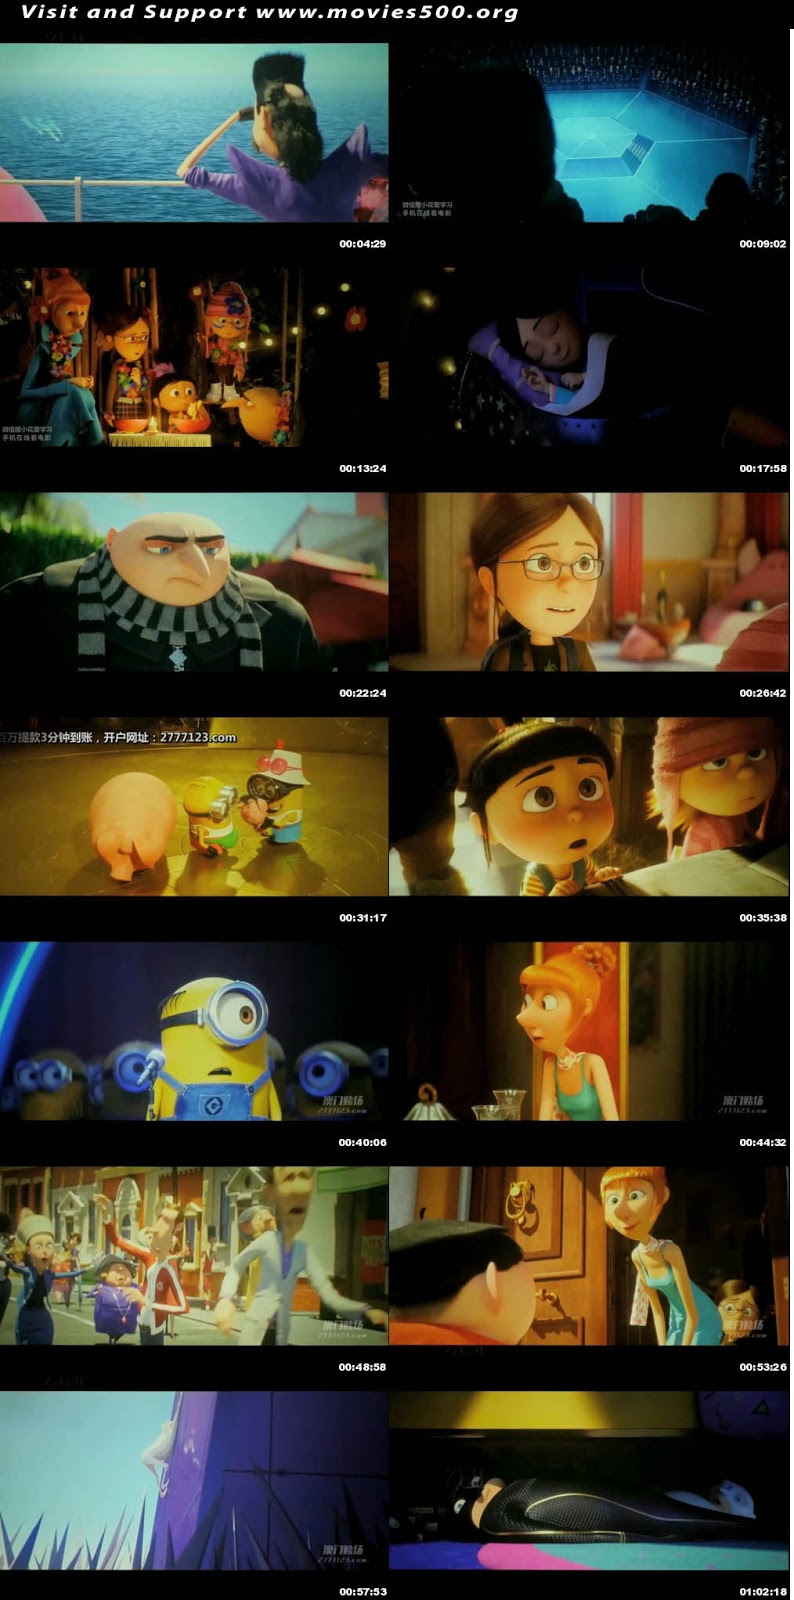 Despicable Me 3 2017 Dual Audio Hindi Movie Download at movies500.site